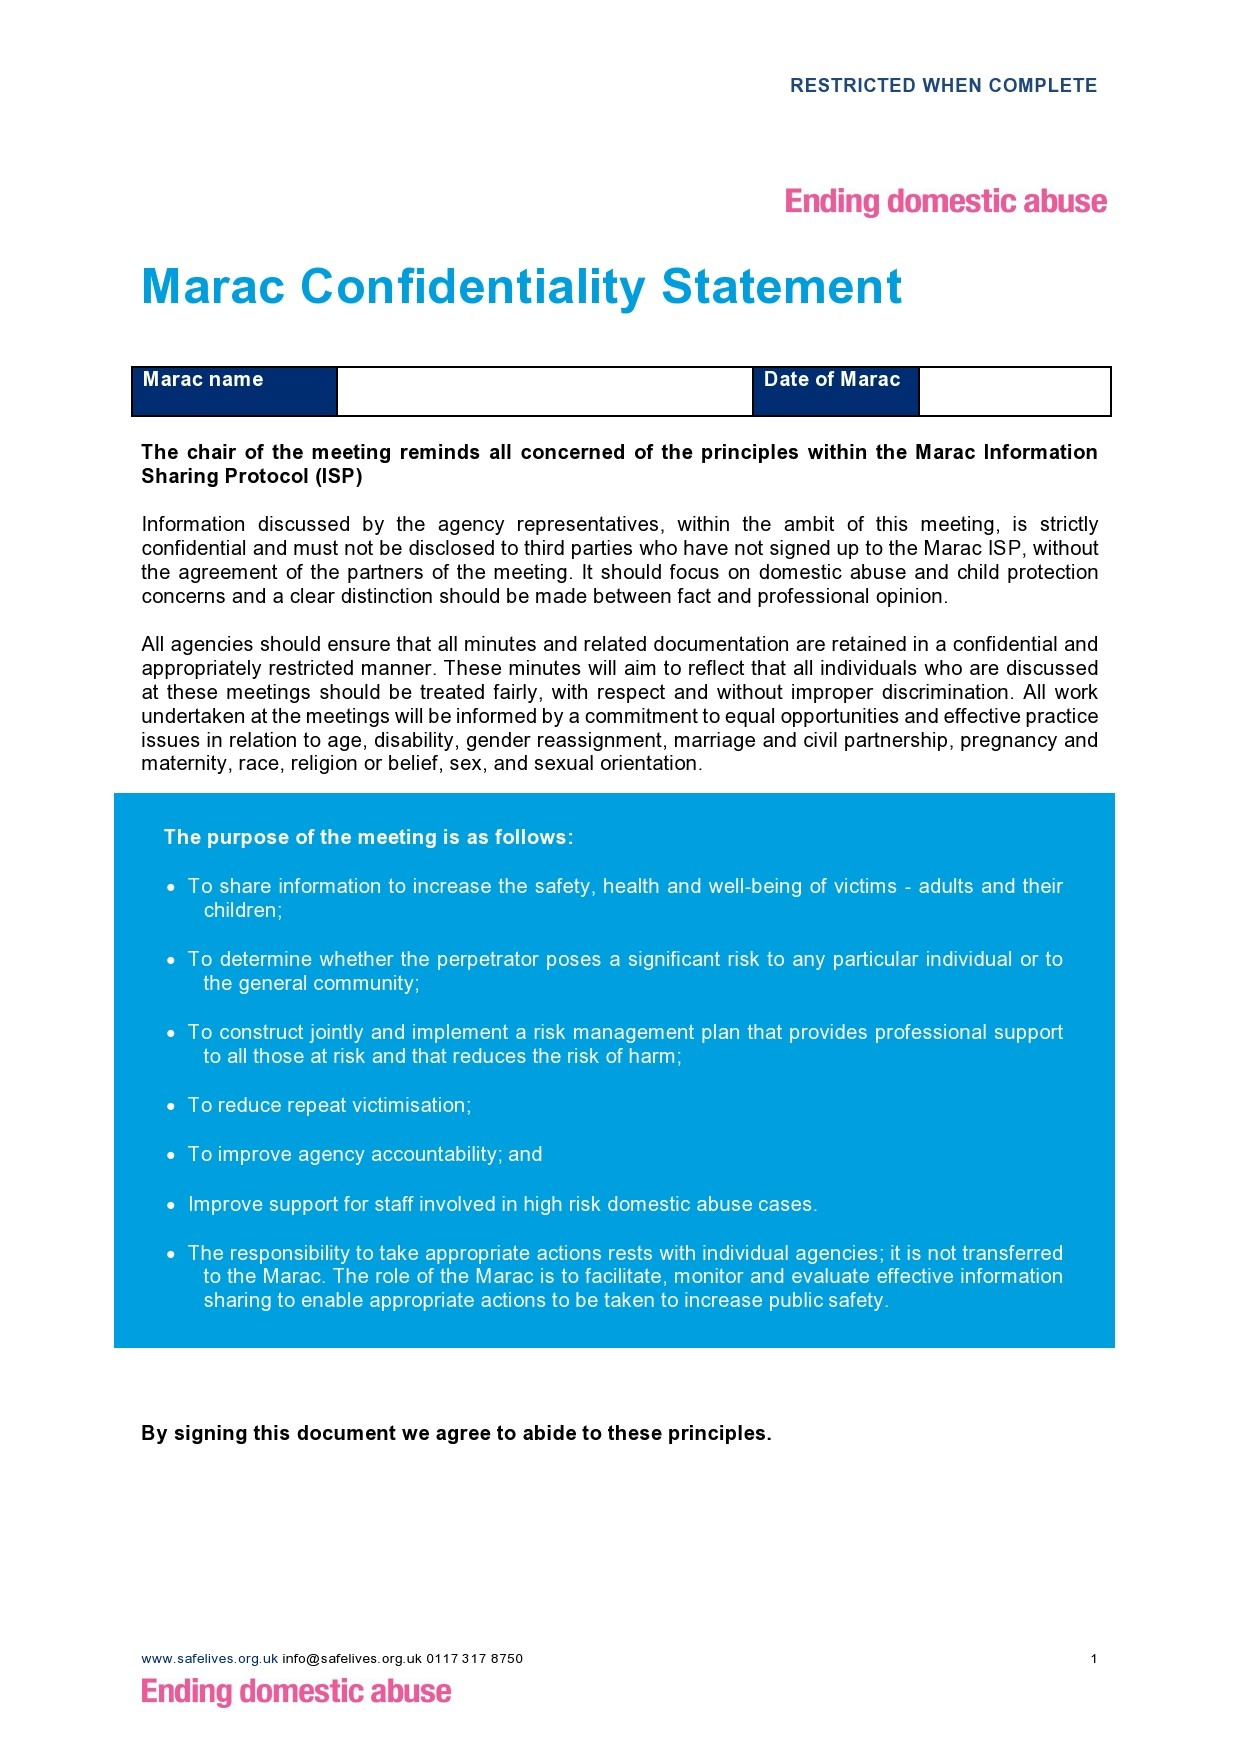 Free confidentiality statement 40